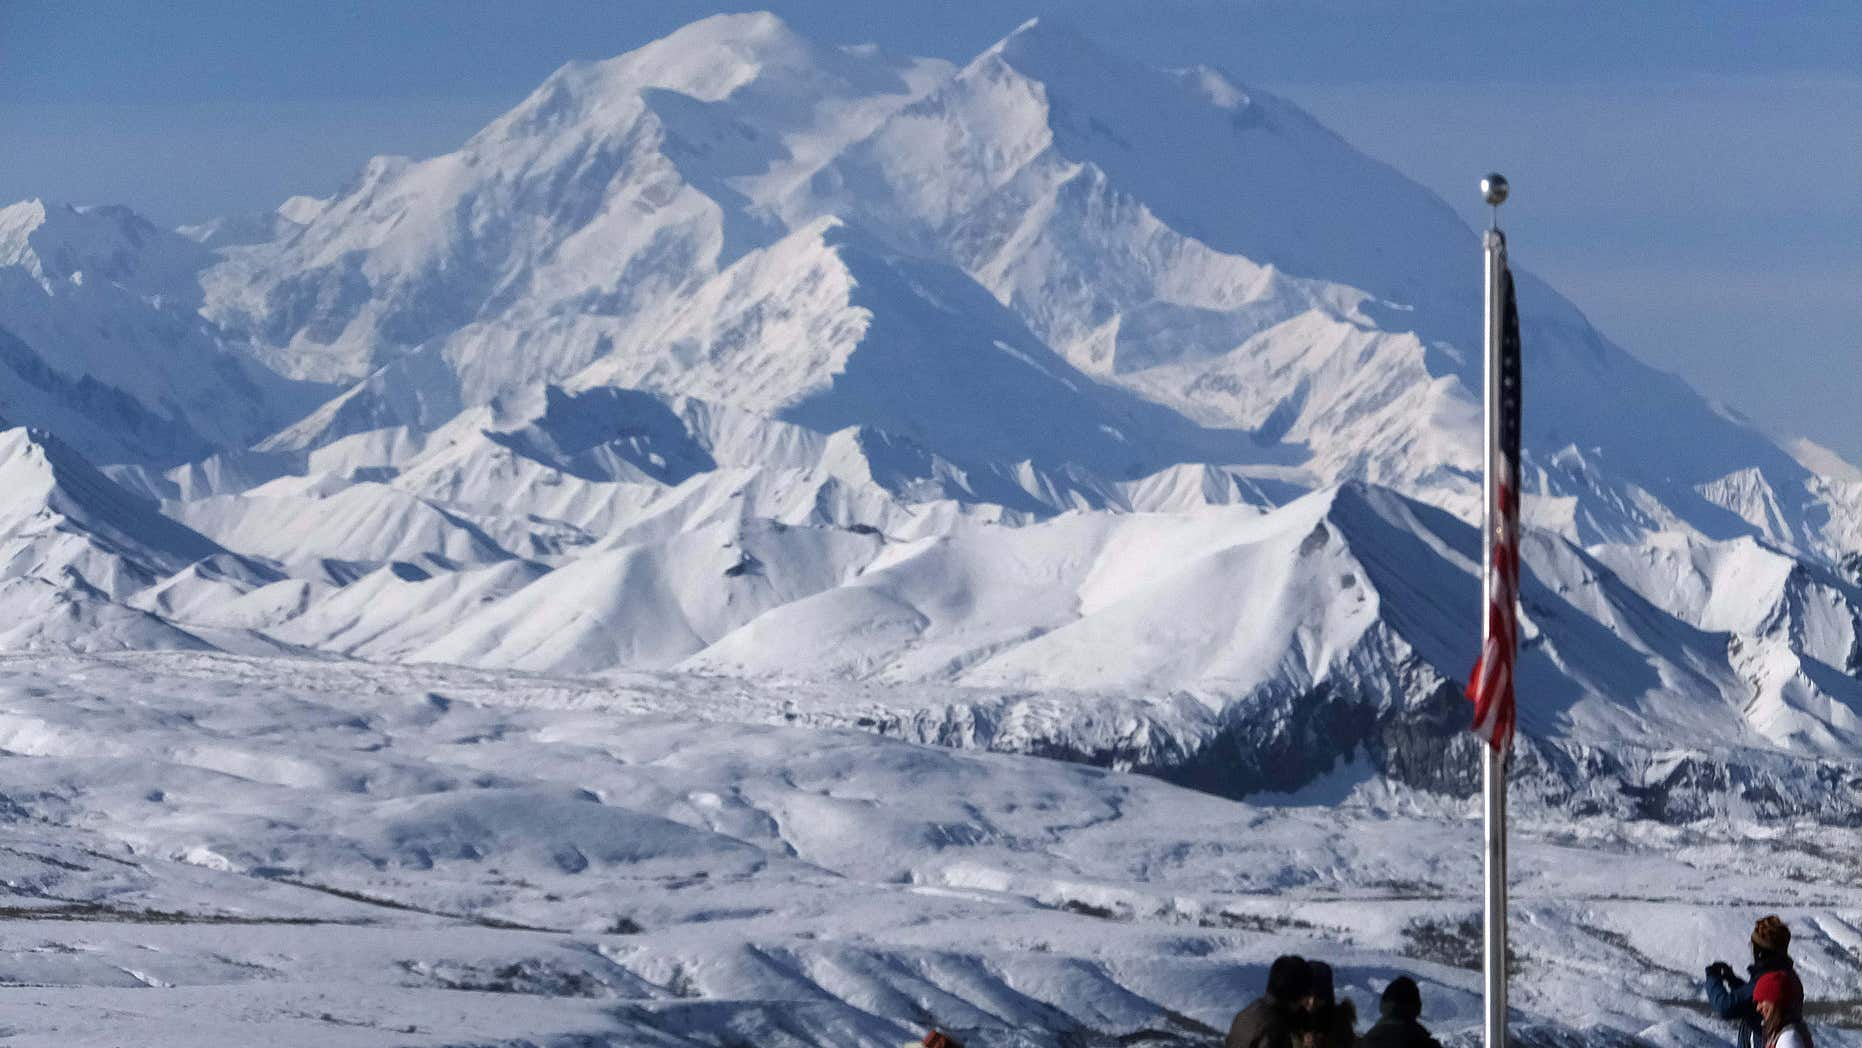 Sept. 2, 2015: People stand at the Eielson Visitor Center with a view of North America's tallest peak, Denali, in the background.